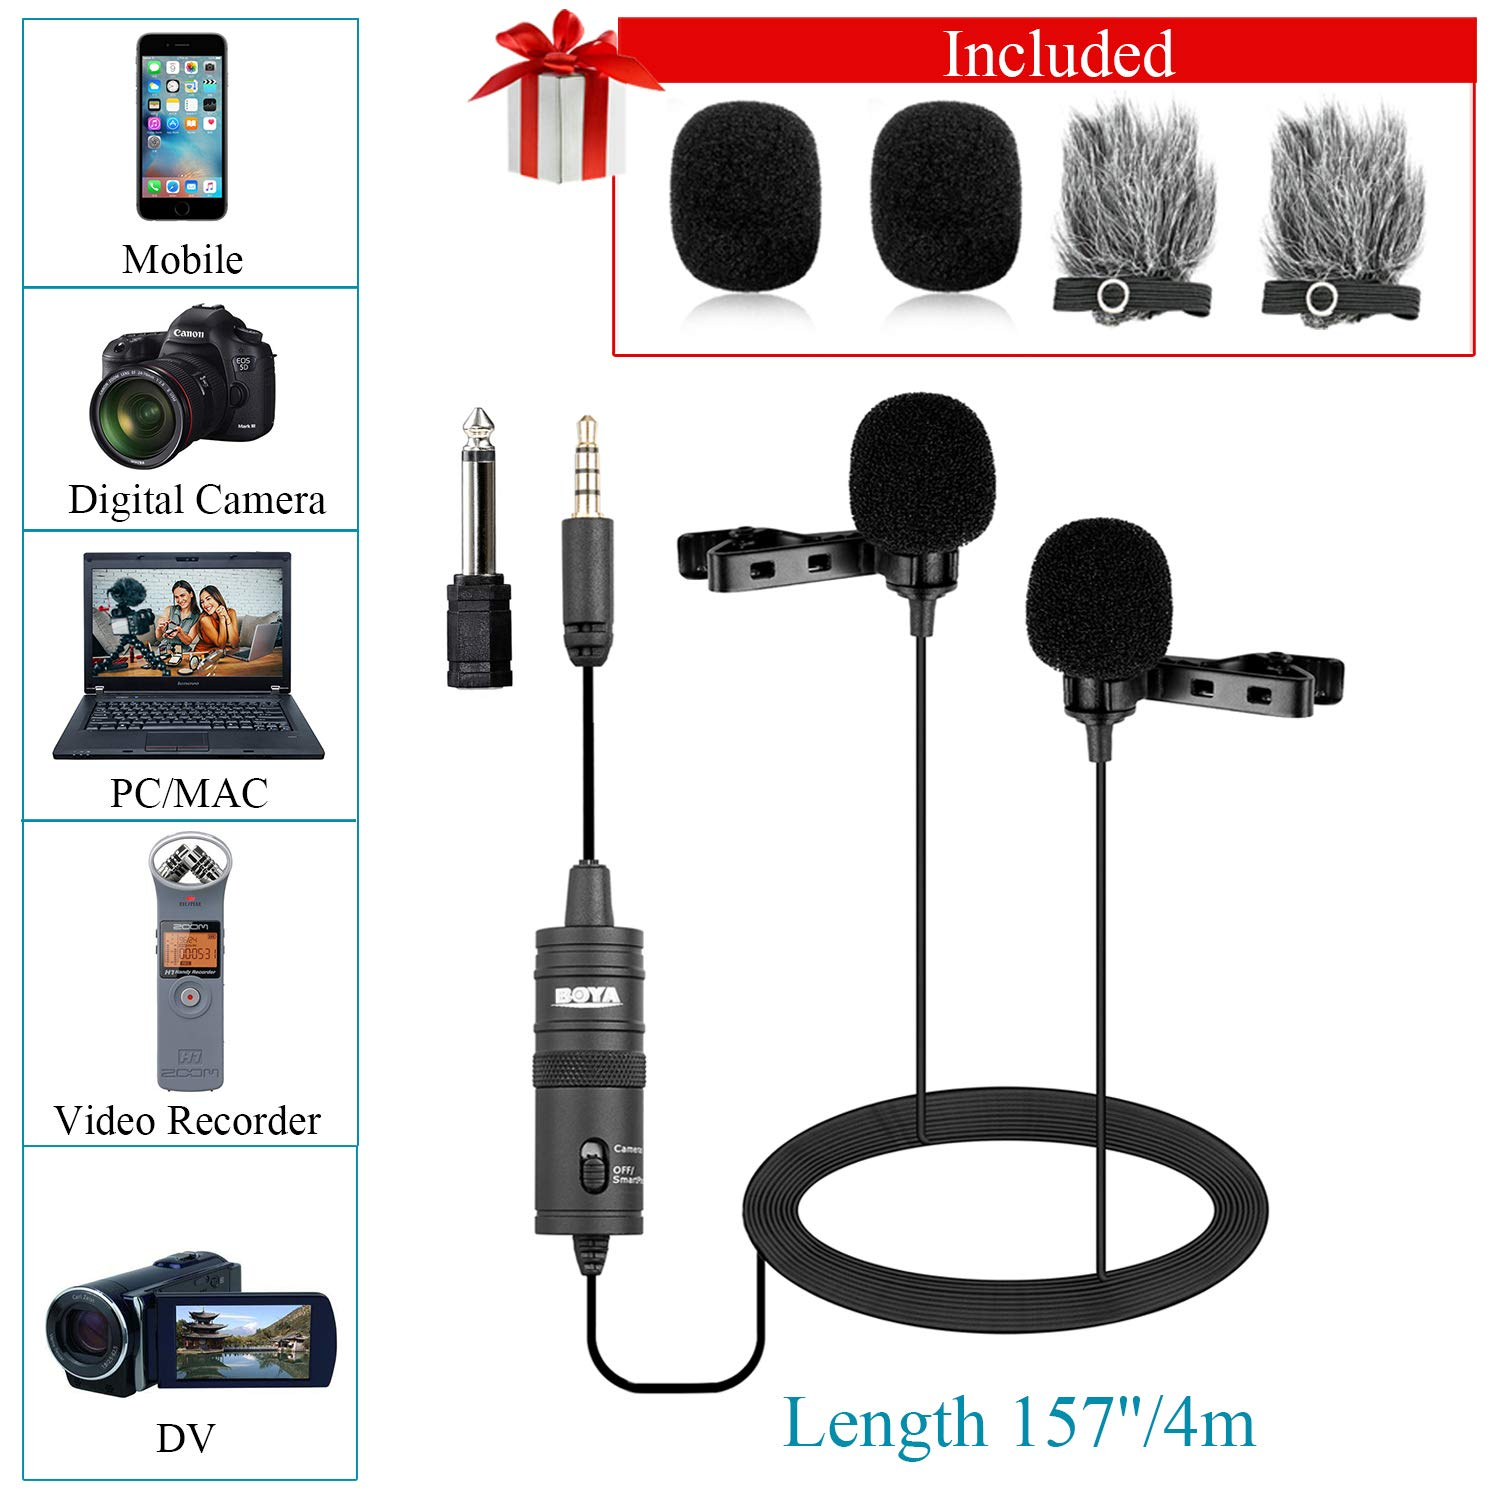 Dual Lavalier Microphone for Smartphone Camera Vlog, 157 Inch/4m BOYA BY-M1DM Dual-Head Lapel Universal Mic with 1/8 Plug Adapter for iPhone 11 X 8 7 Samsung Canon Nikon DSLR Camcorders PC Recorder by BOYA